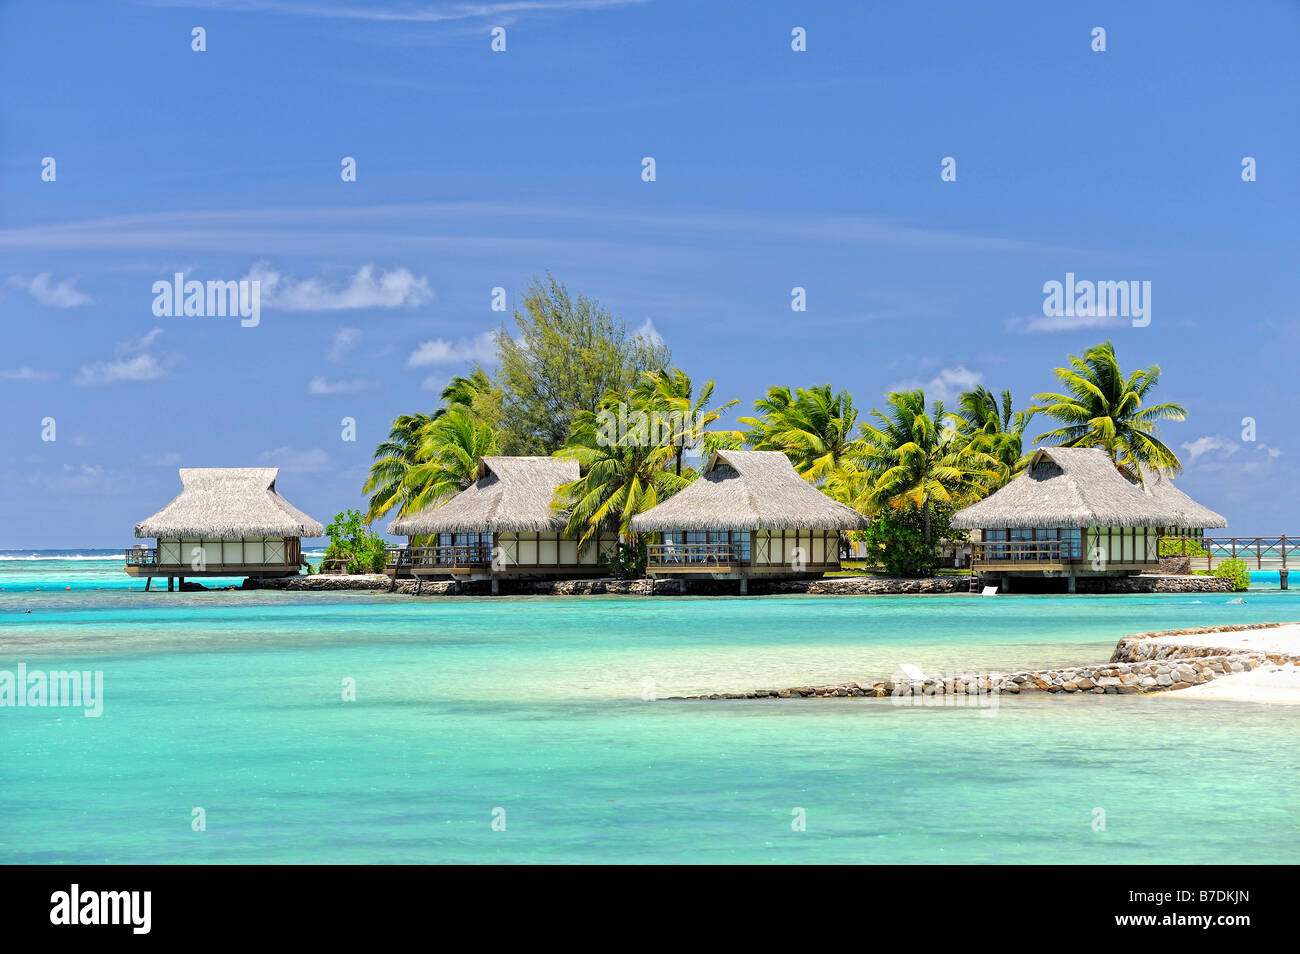 Overwater bungalows at the Hotel Intercontinental Resort & Spa, Moorea, French Polynesia - Stock Image